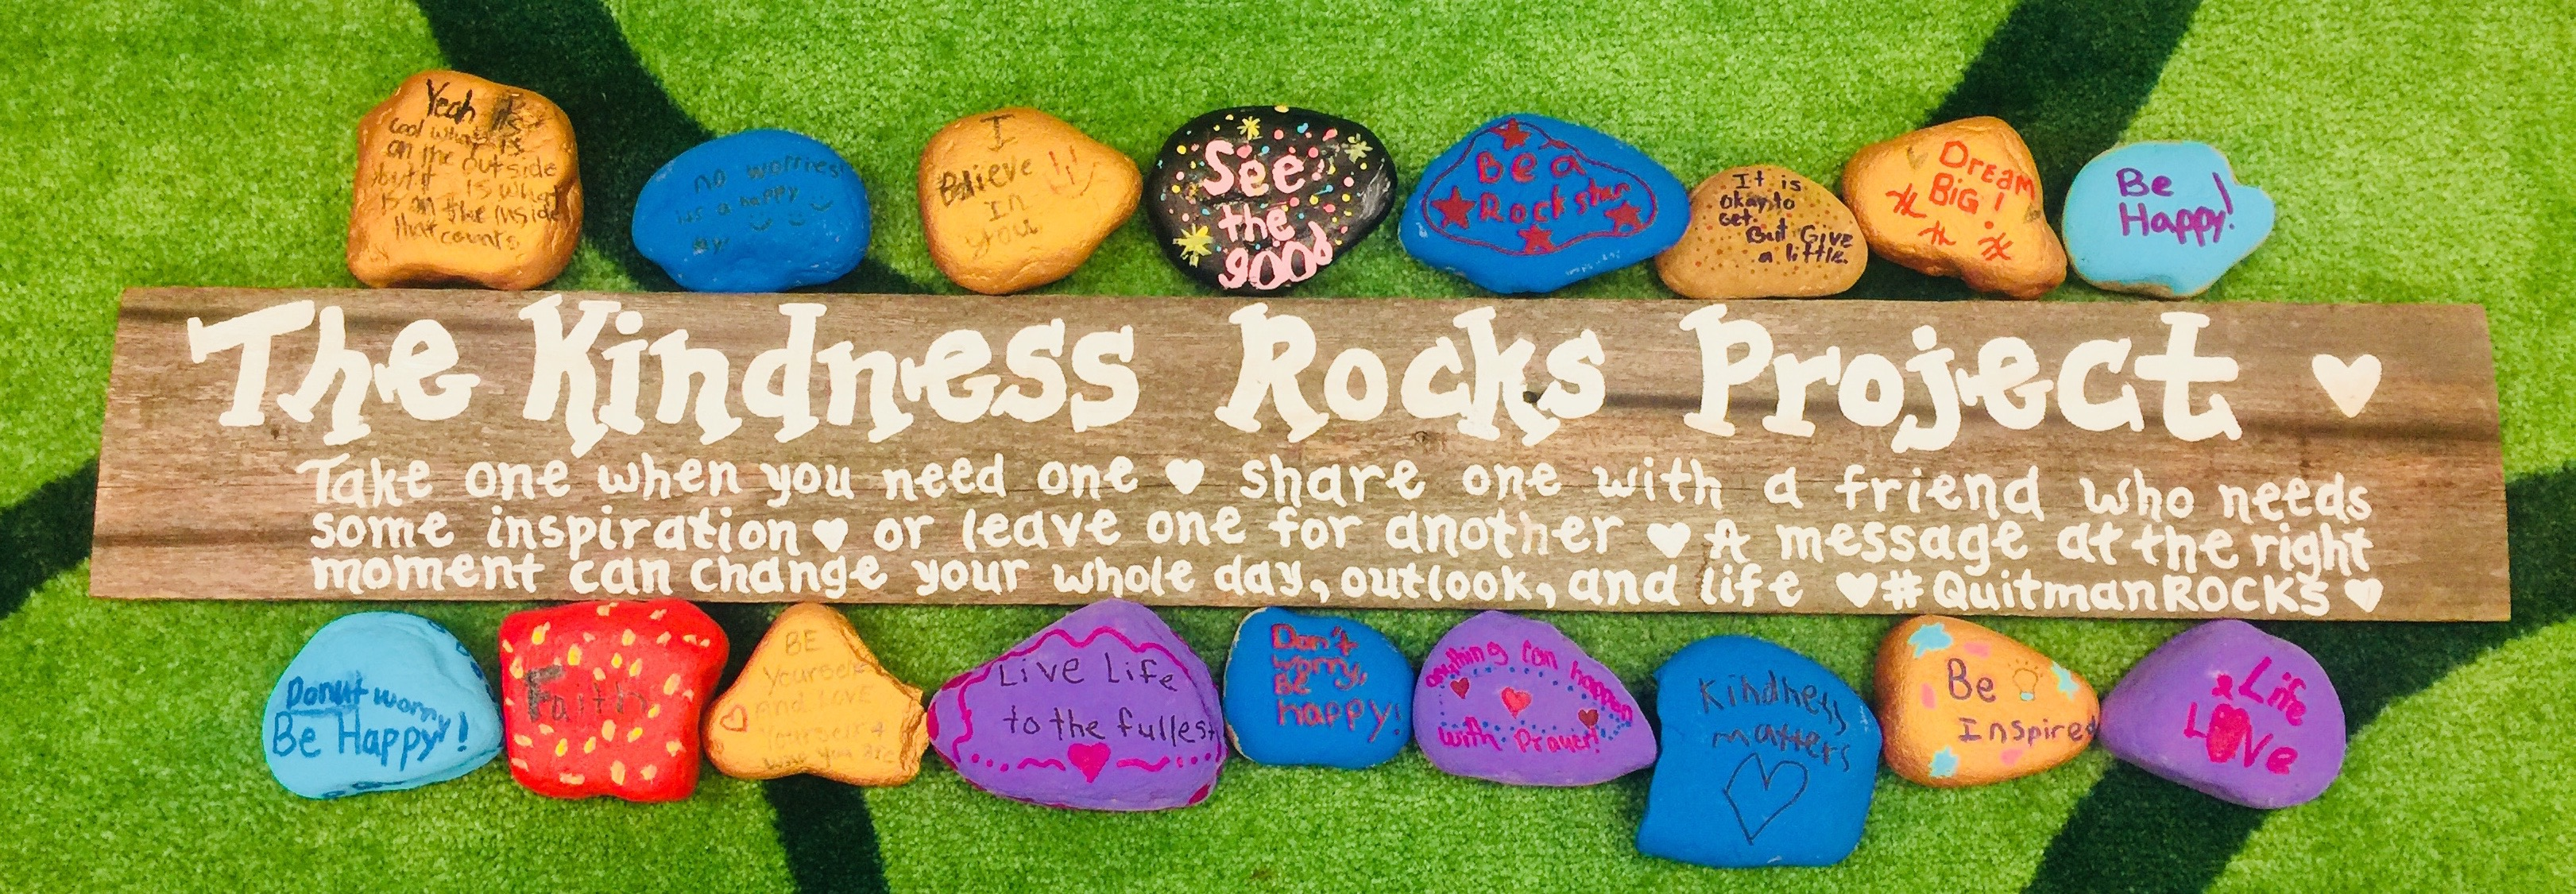 A photo showing the new Kindness Rocks which will be placed this week.